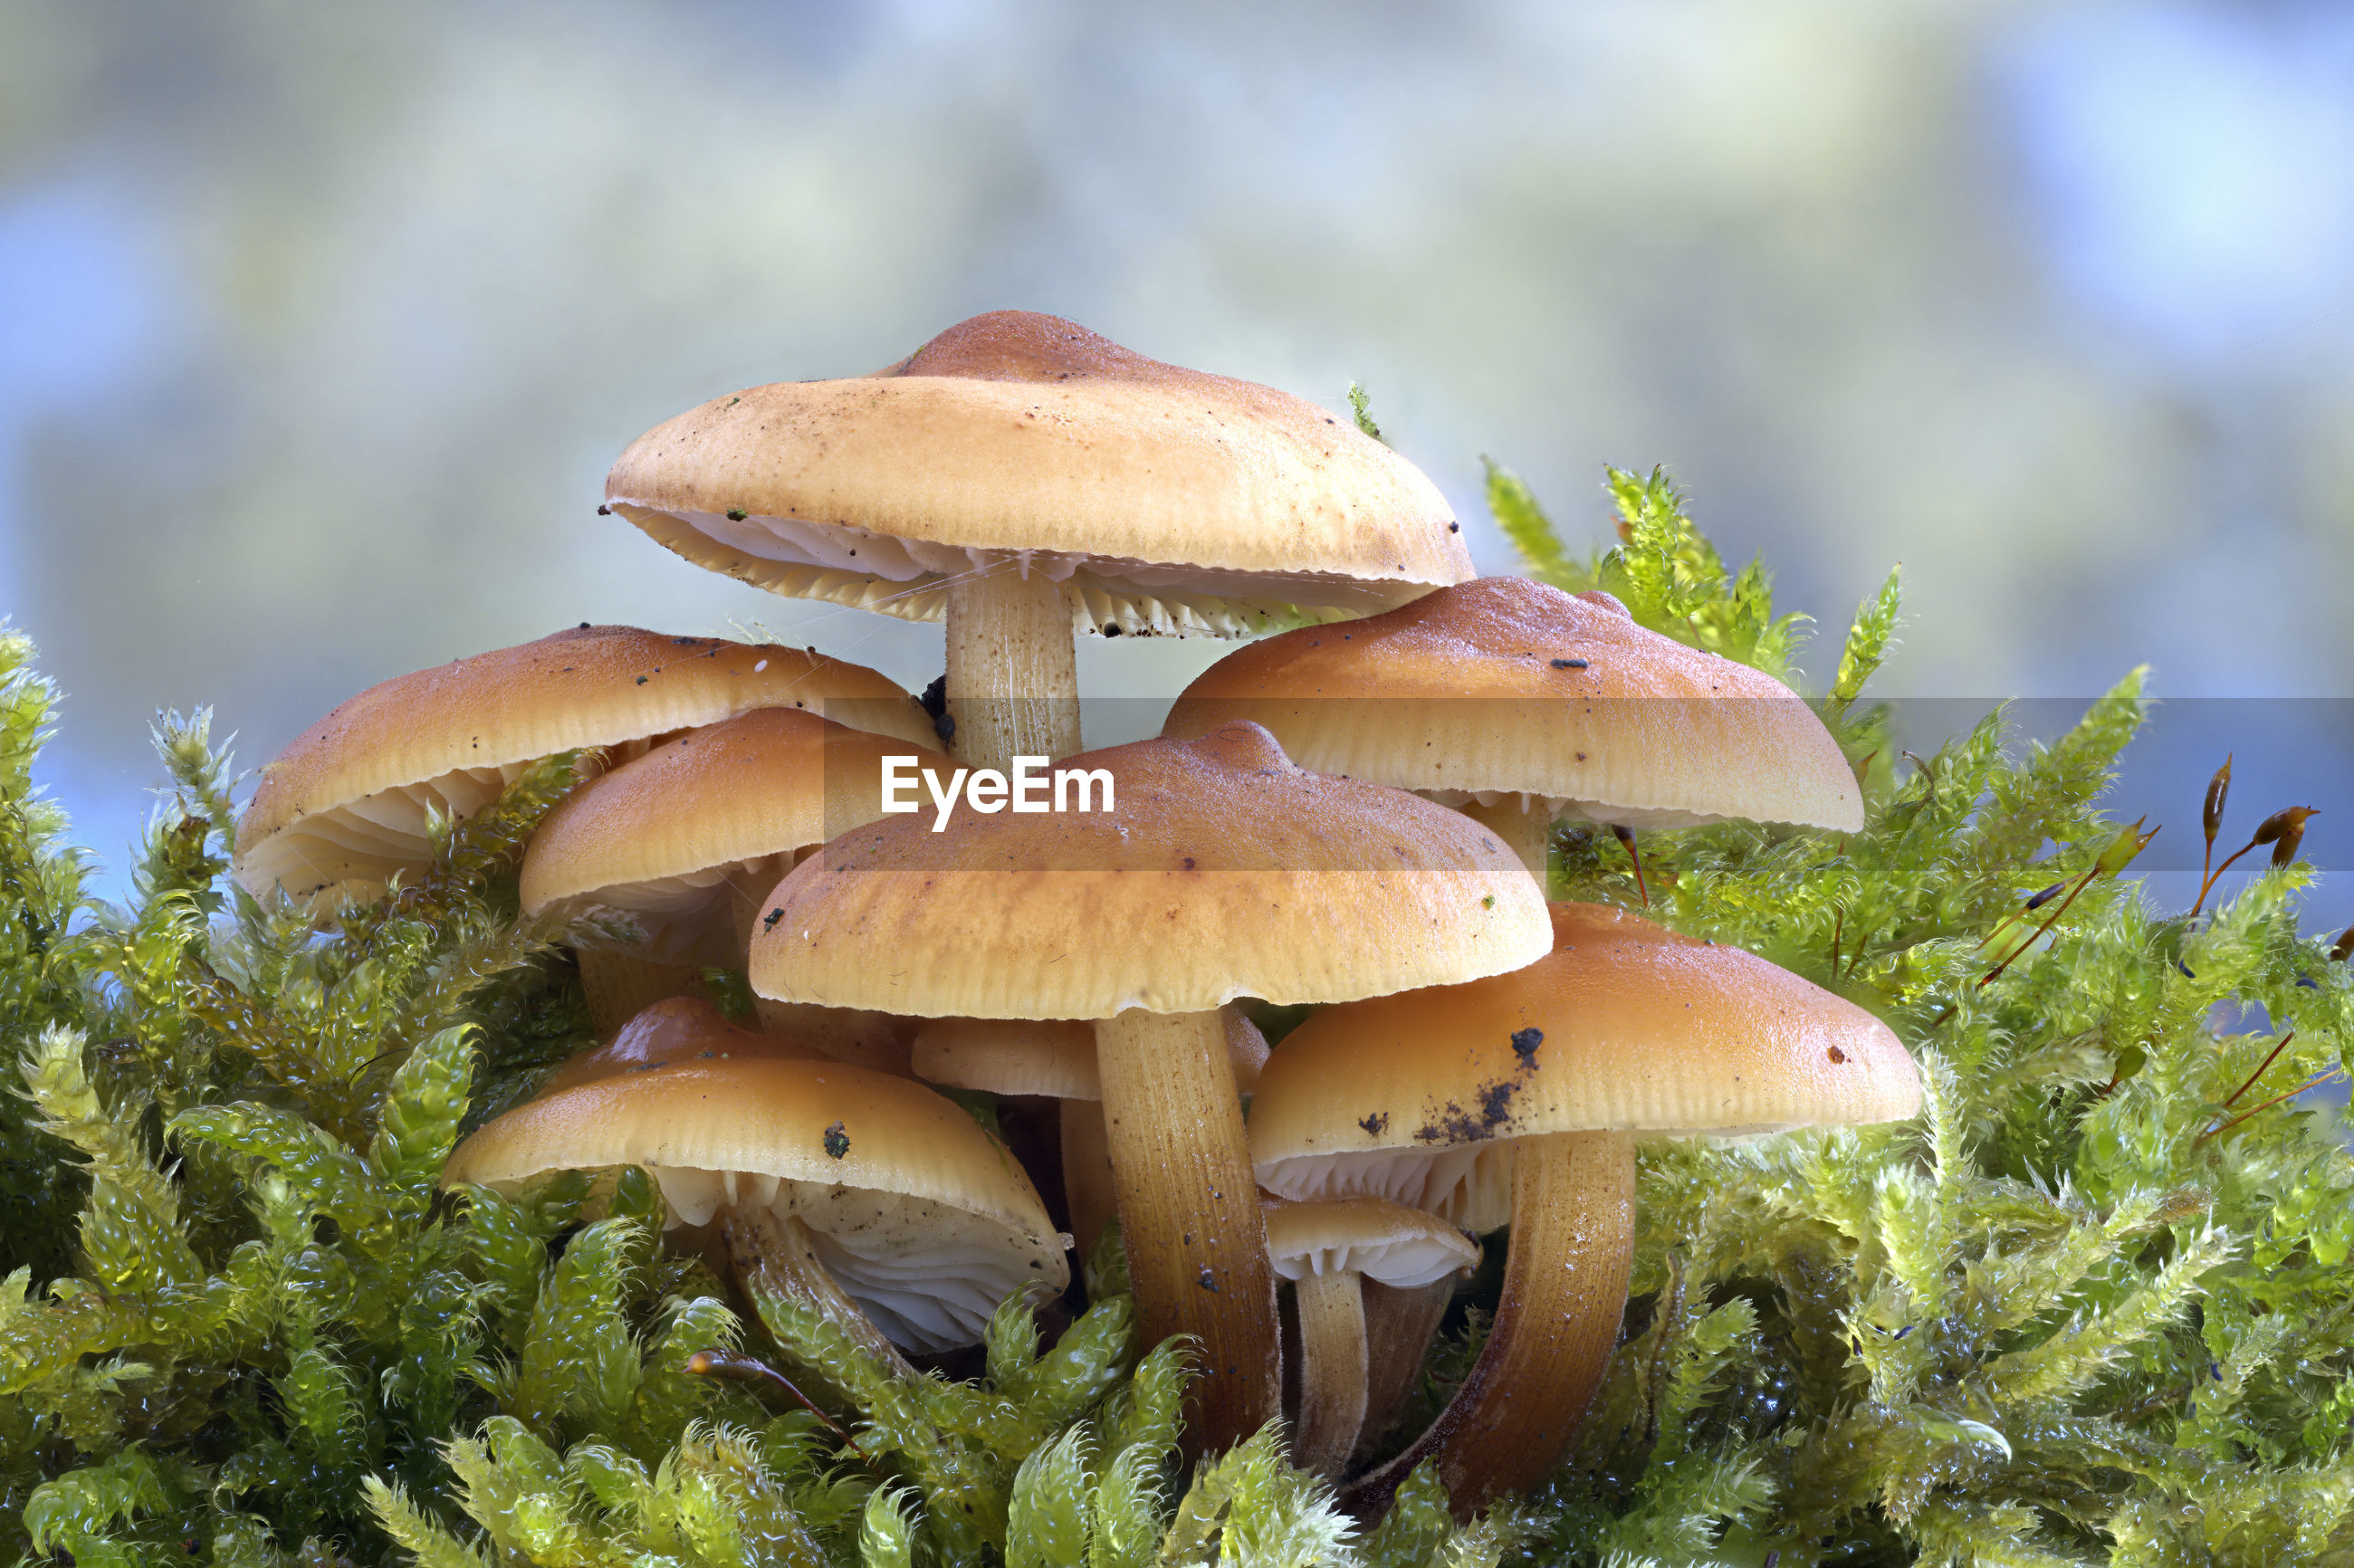 CLOSE-UP OF MUSHROOM GROWING IN FIELD